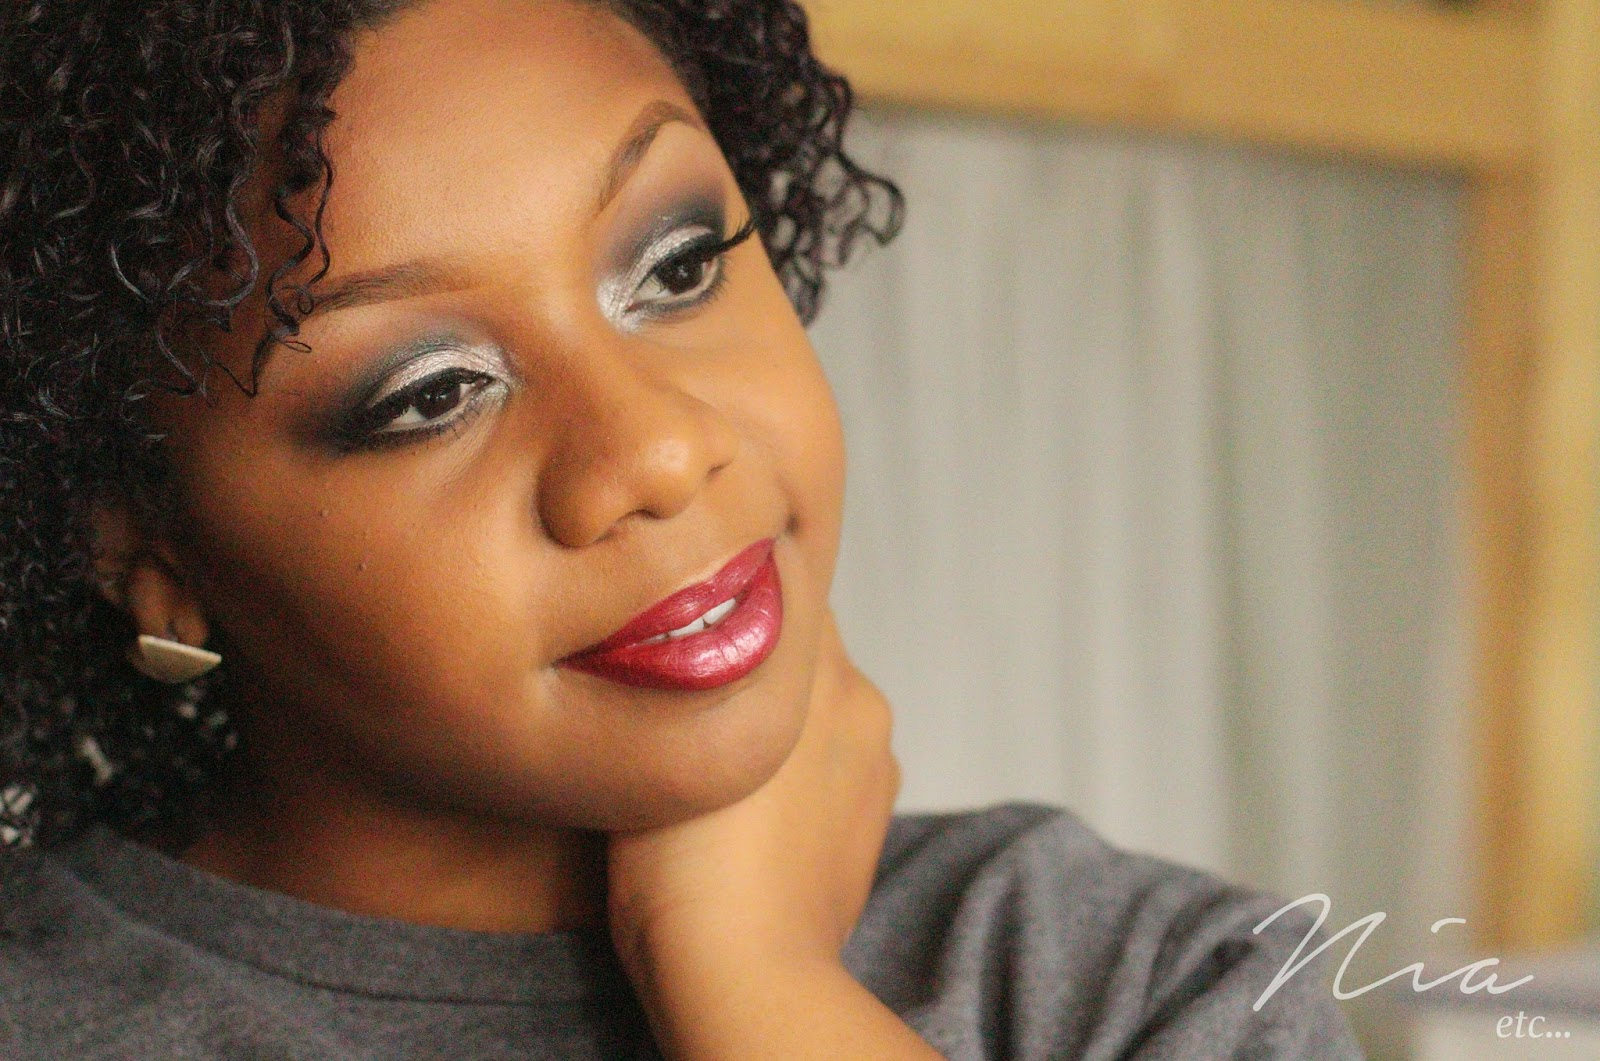 Classic Glamour Look with Bold Cut Crease and Red Lipstick 7